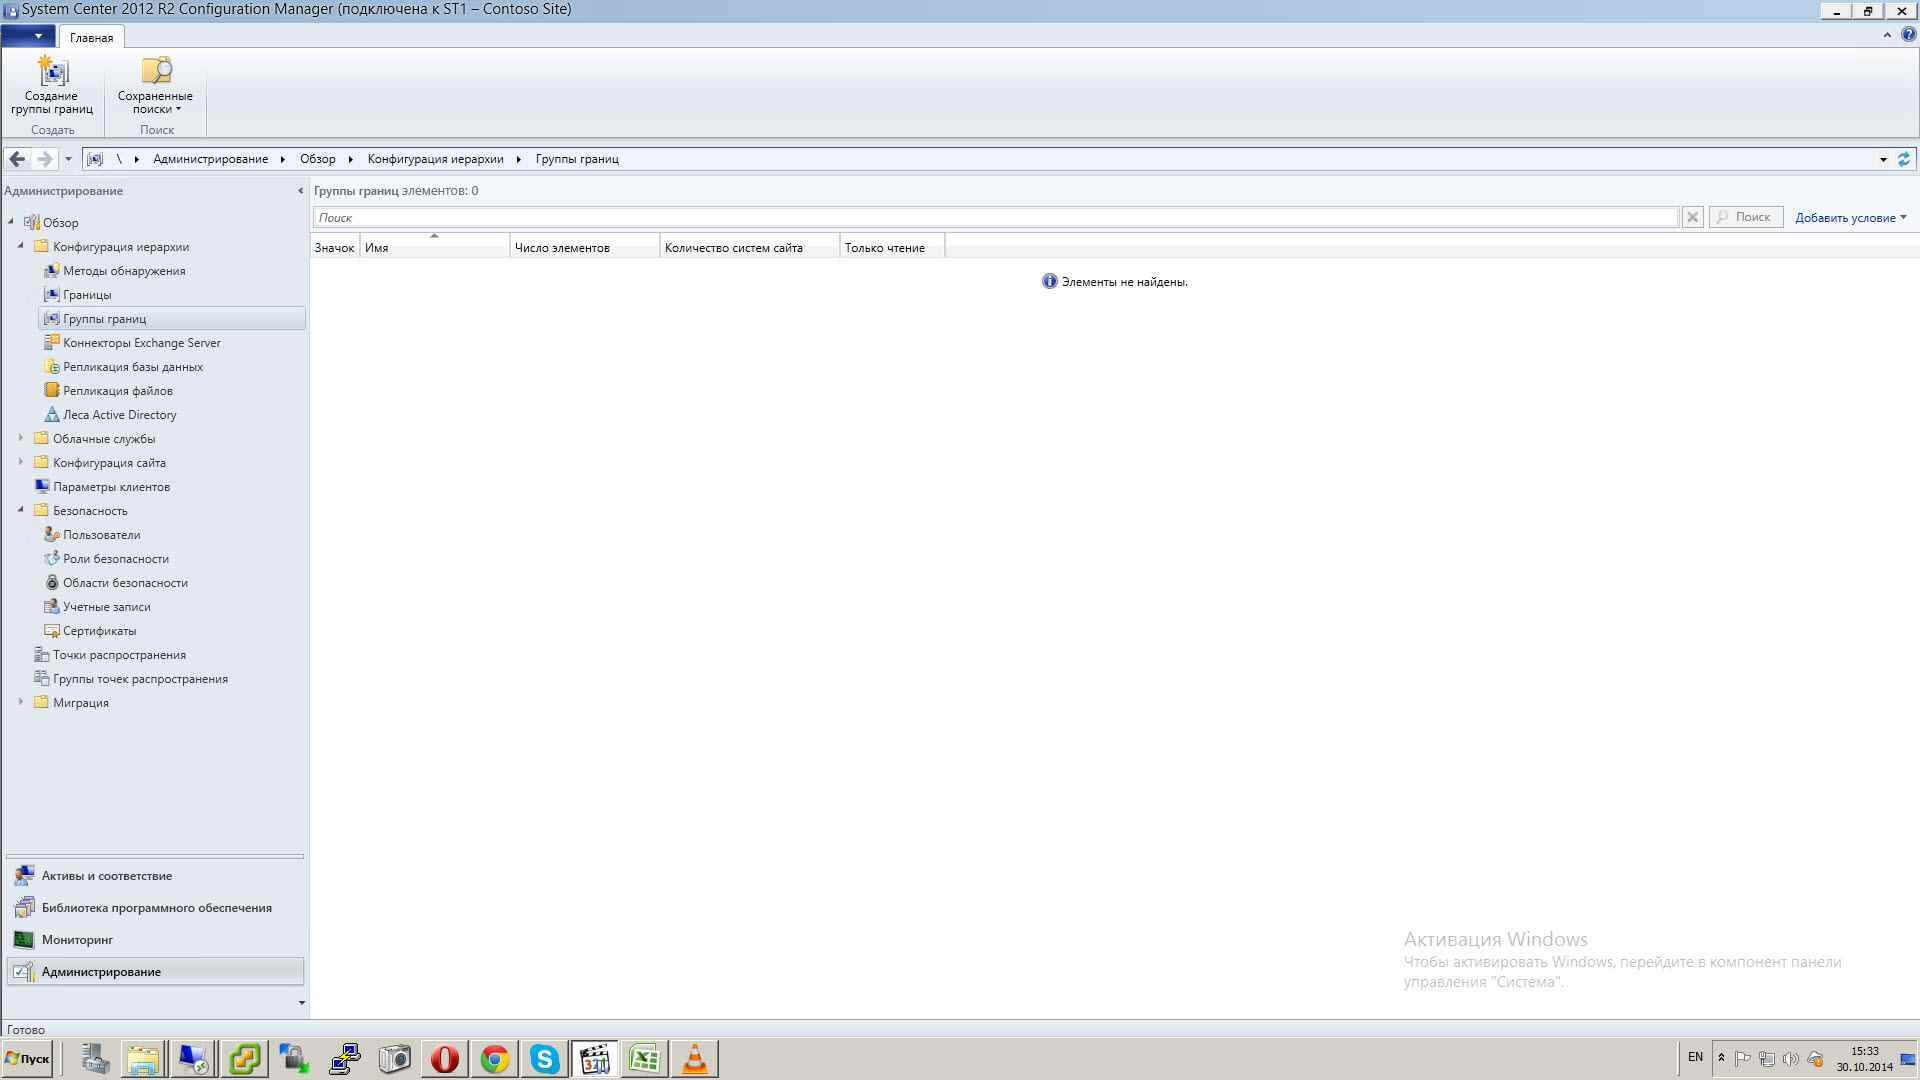 Как установить SCCM (System Center Configuration Manager) 2012R2 в windows server 2012R2 -3 часть. Базовая настройка site server-38